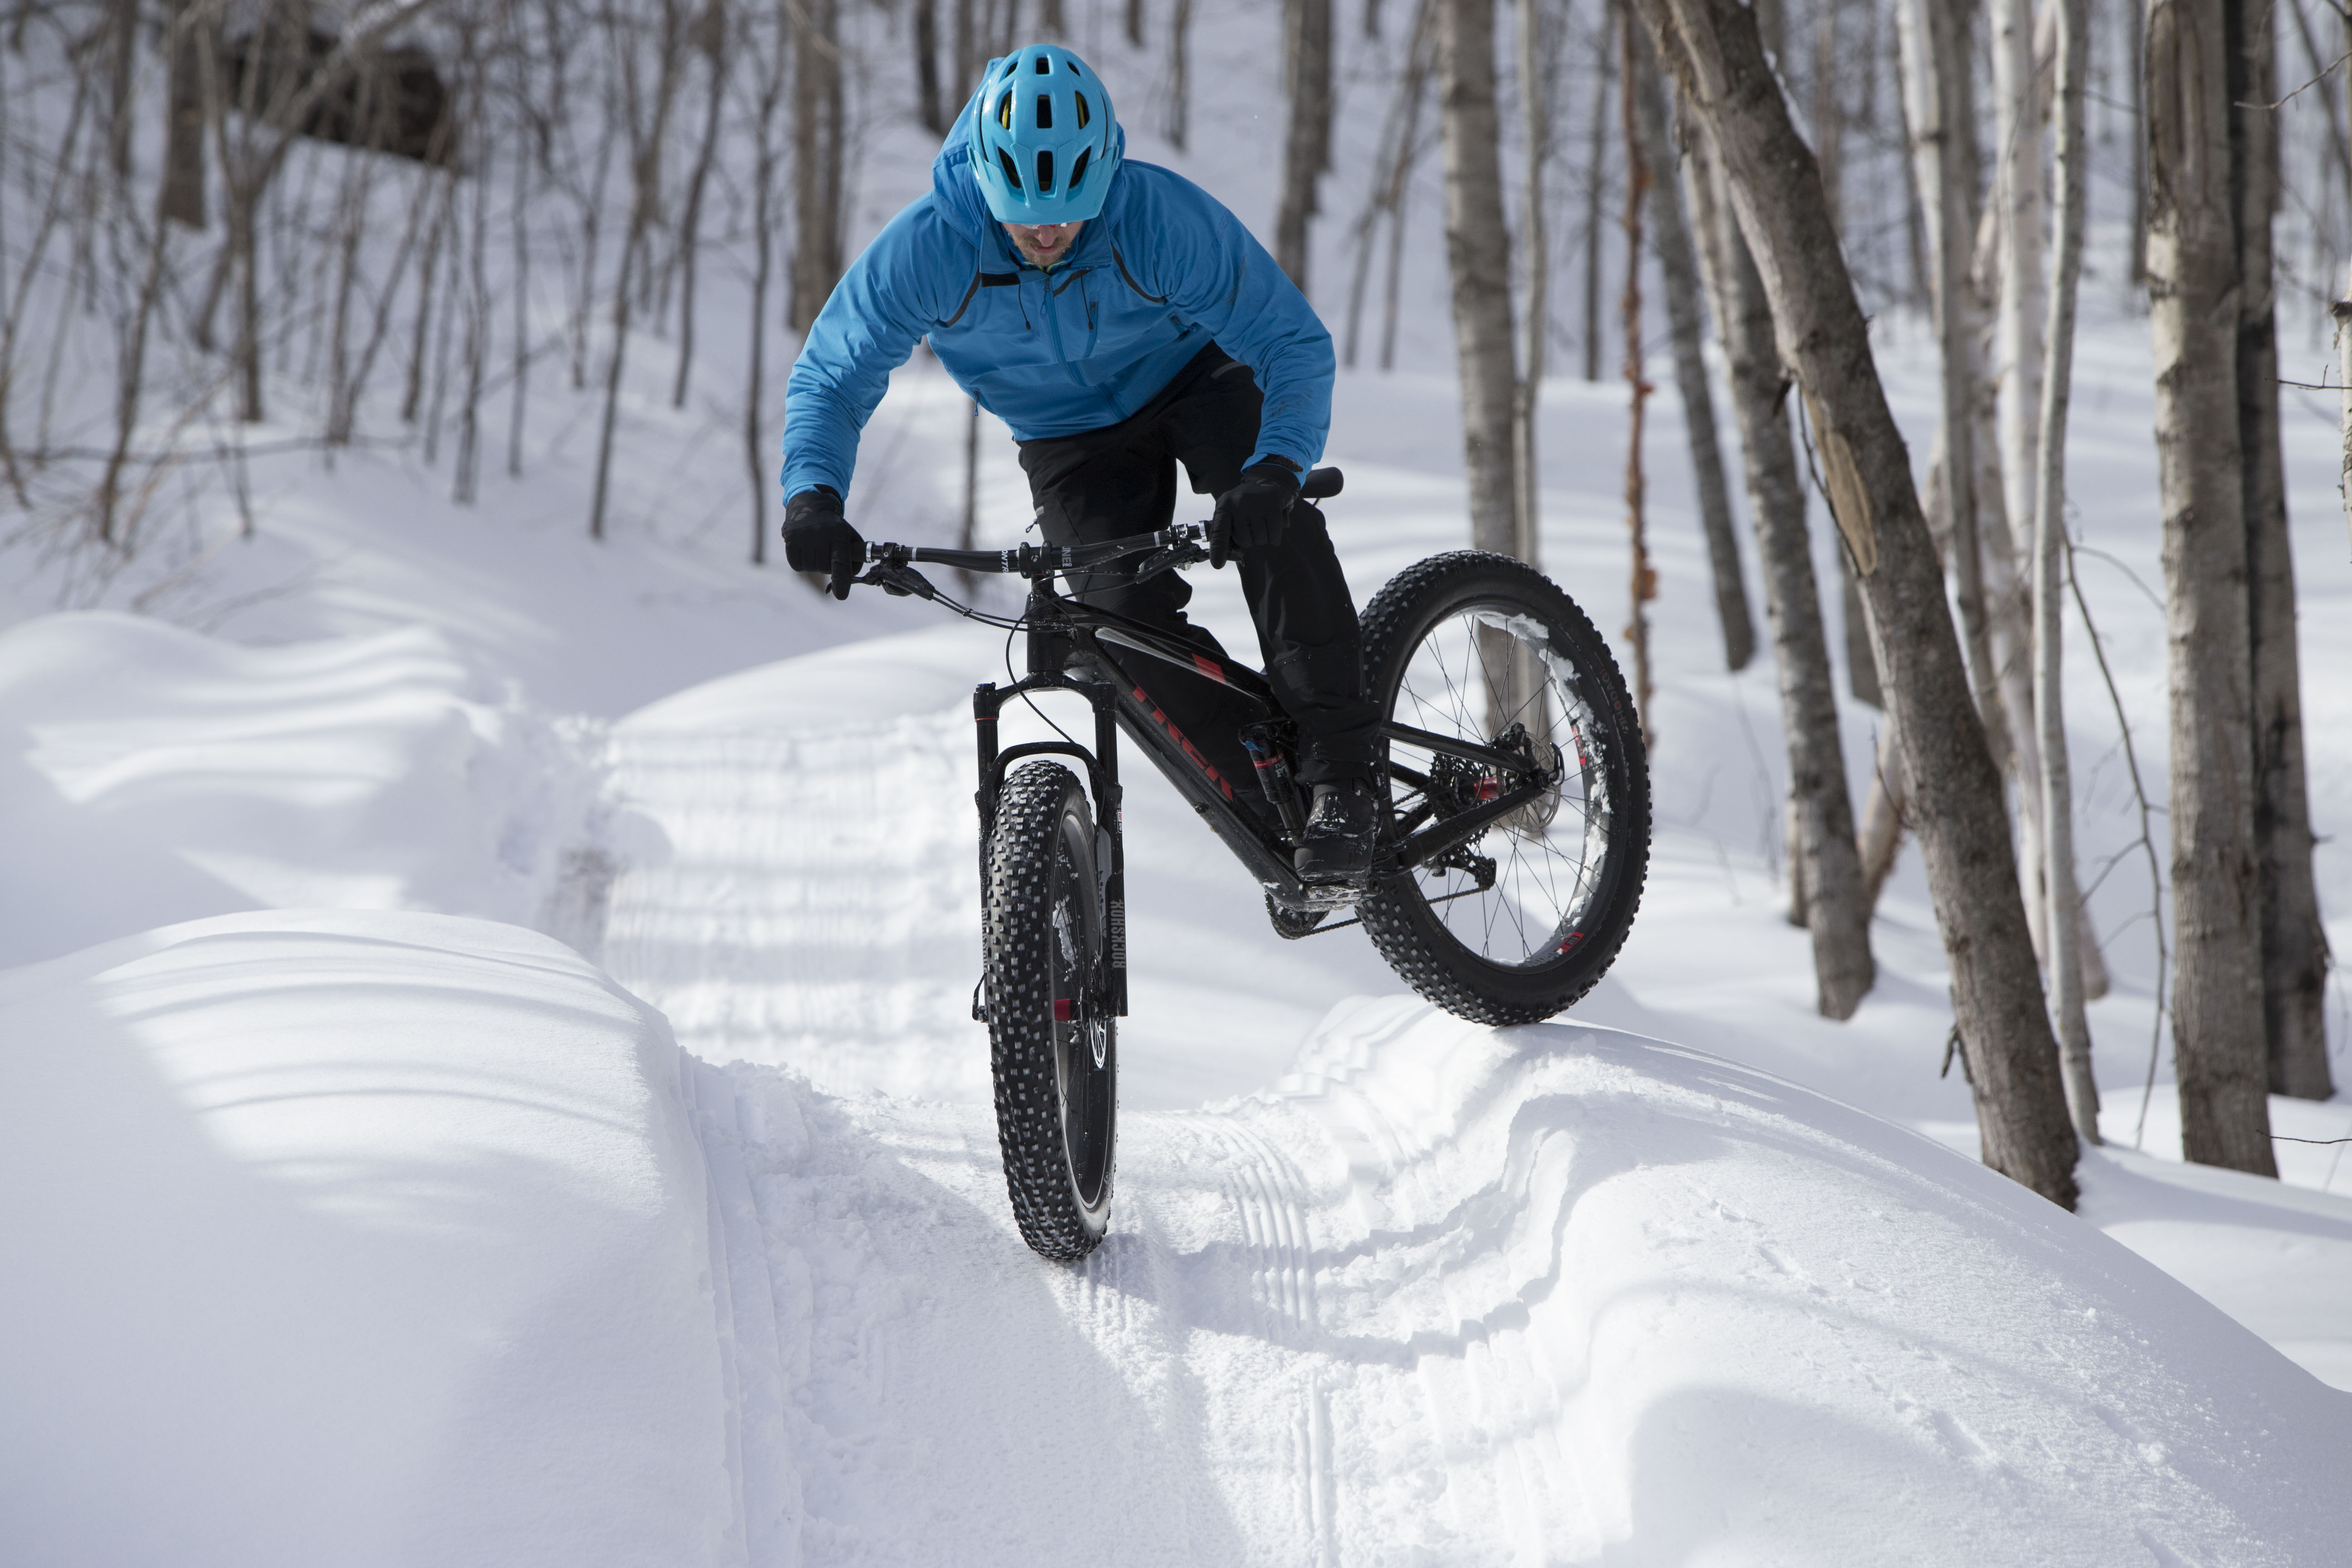 Trek Launches All New Full Suspension Fat Bike The Farley